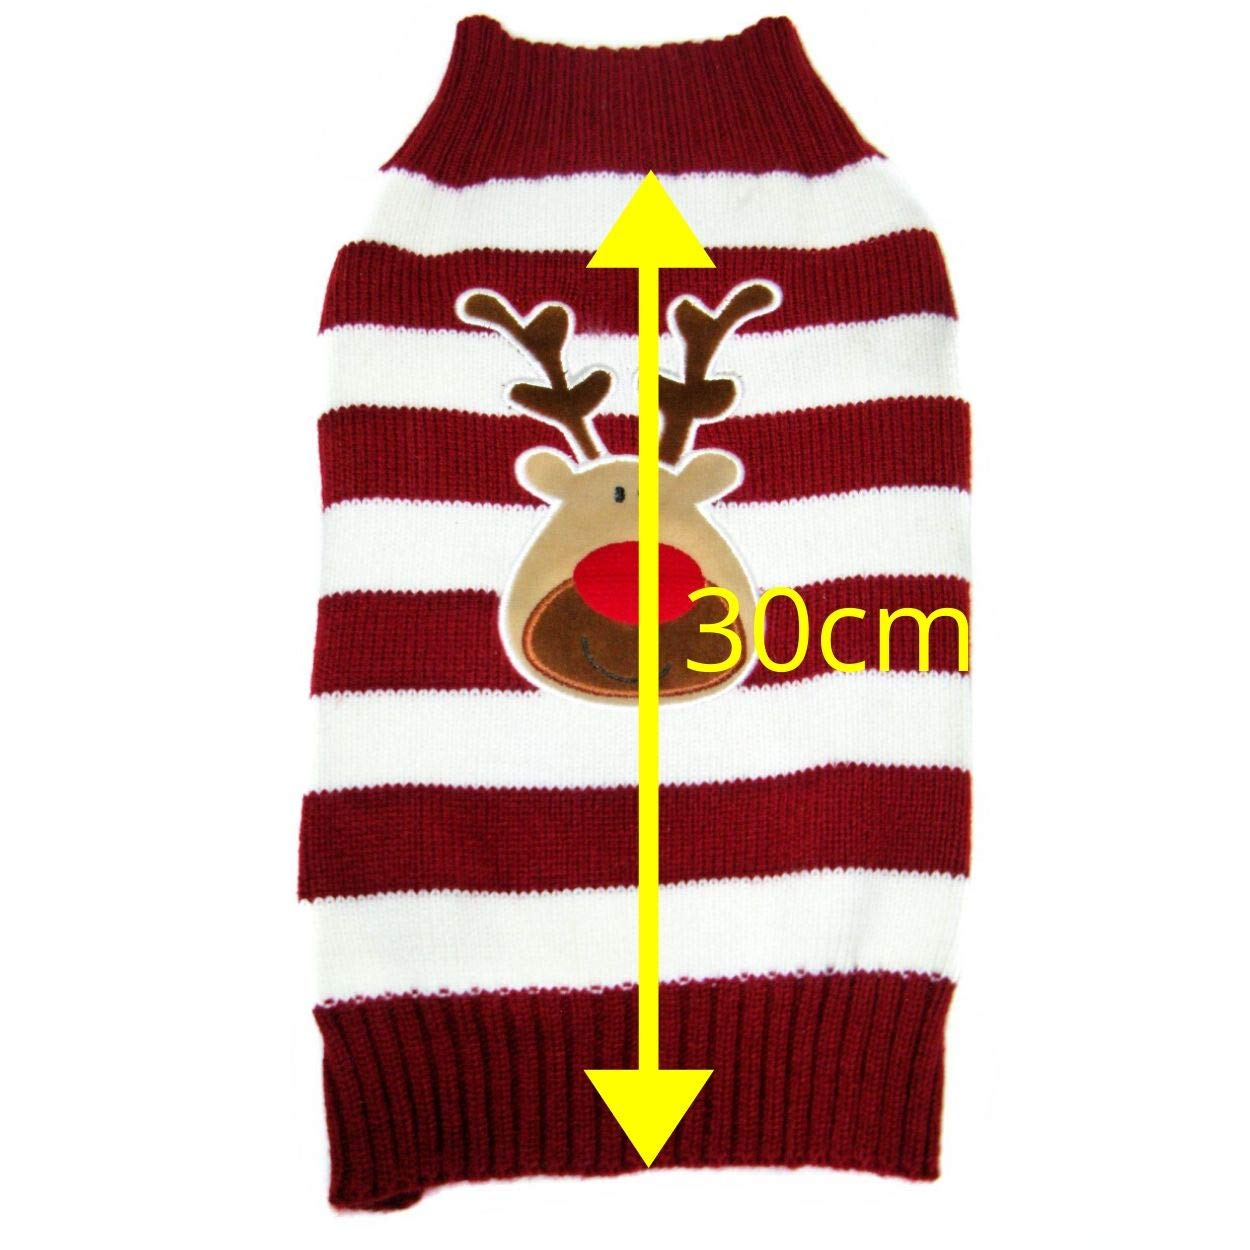 Small 30cm Fifi /& Fred Christmas Jumper for Dogs Cute Rudolph the Reindeer Plush Motif